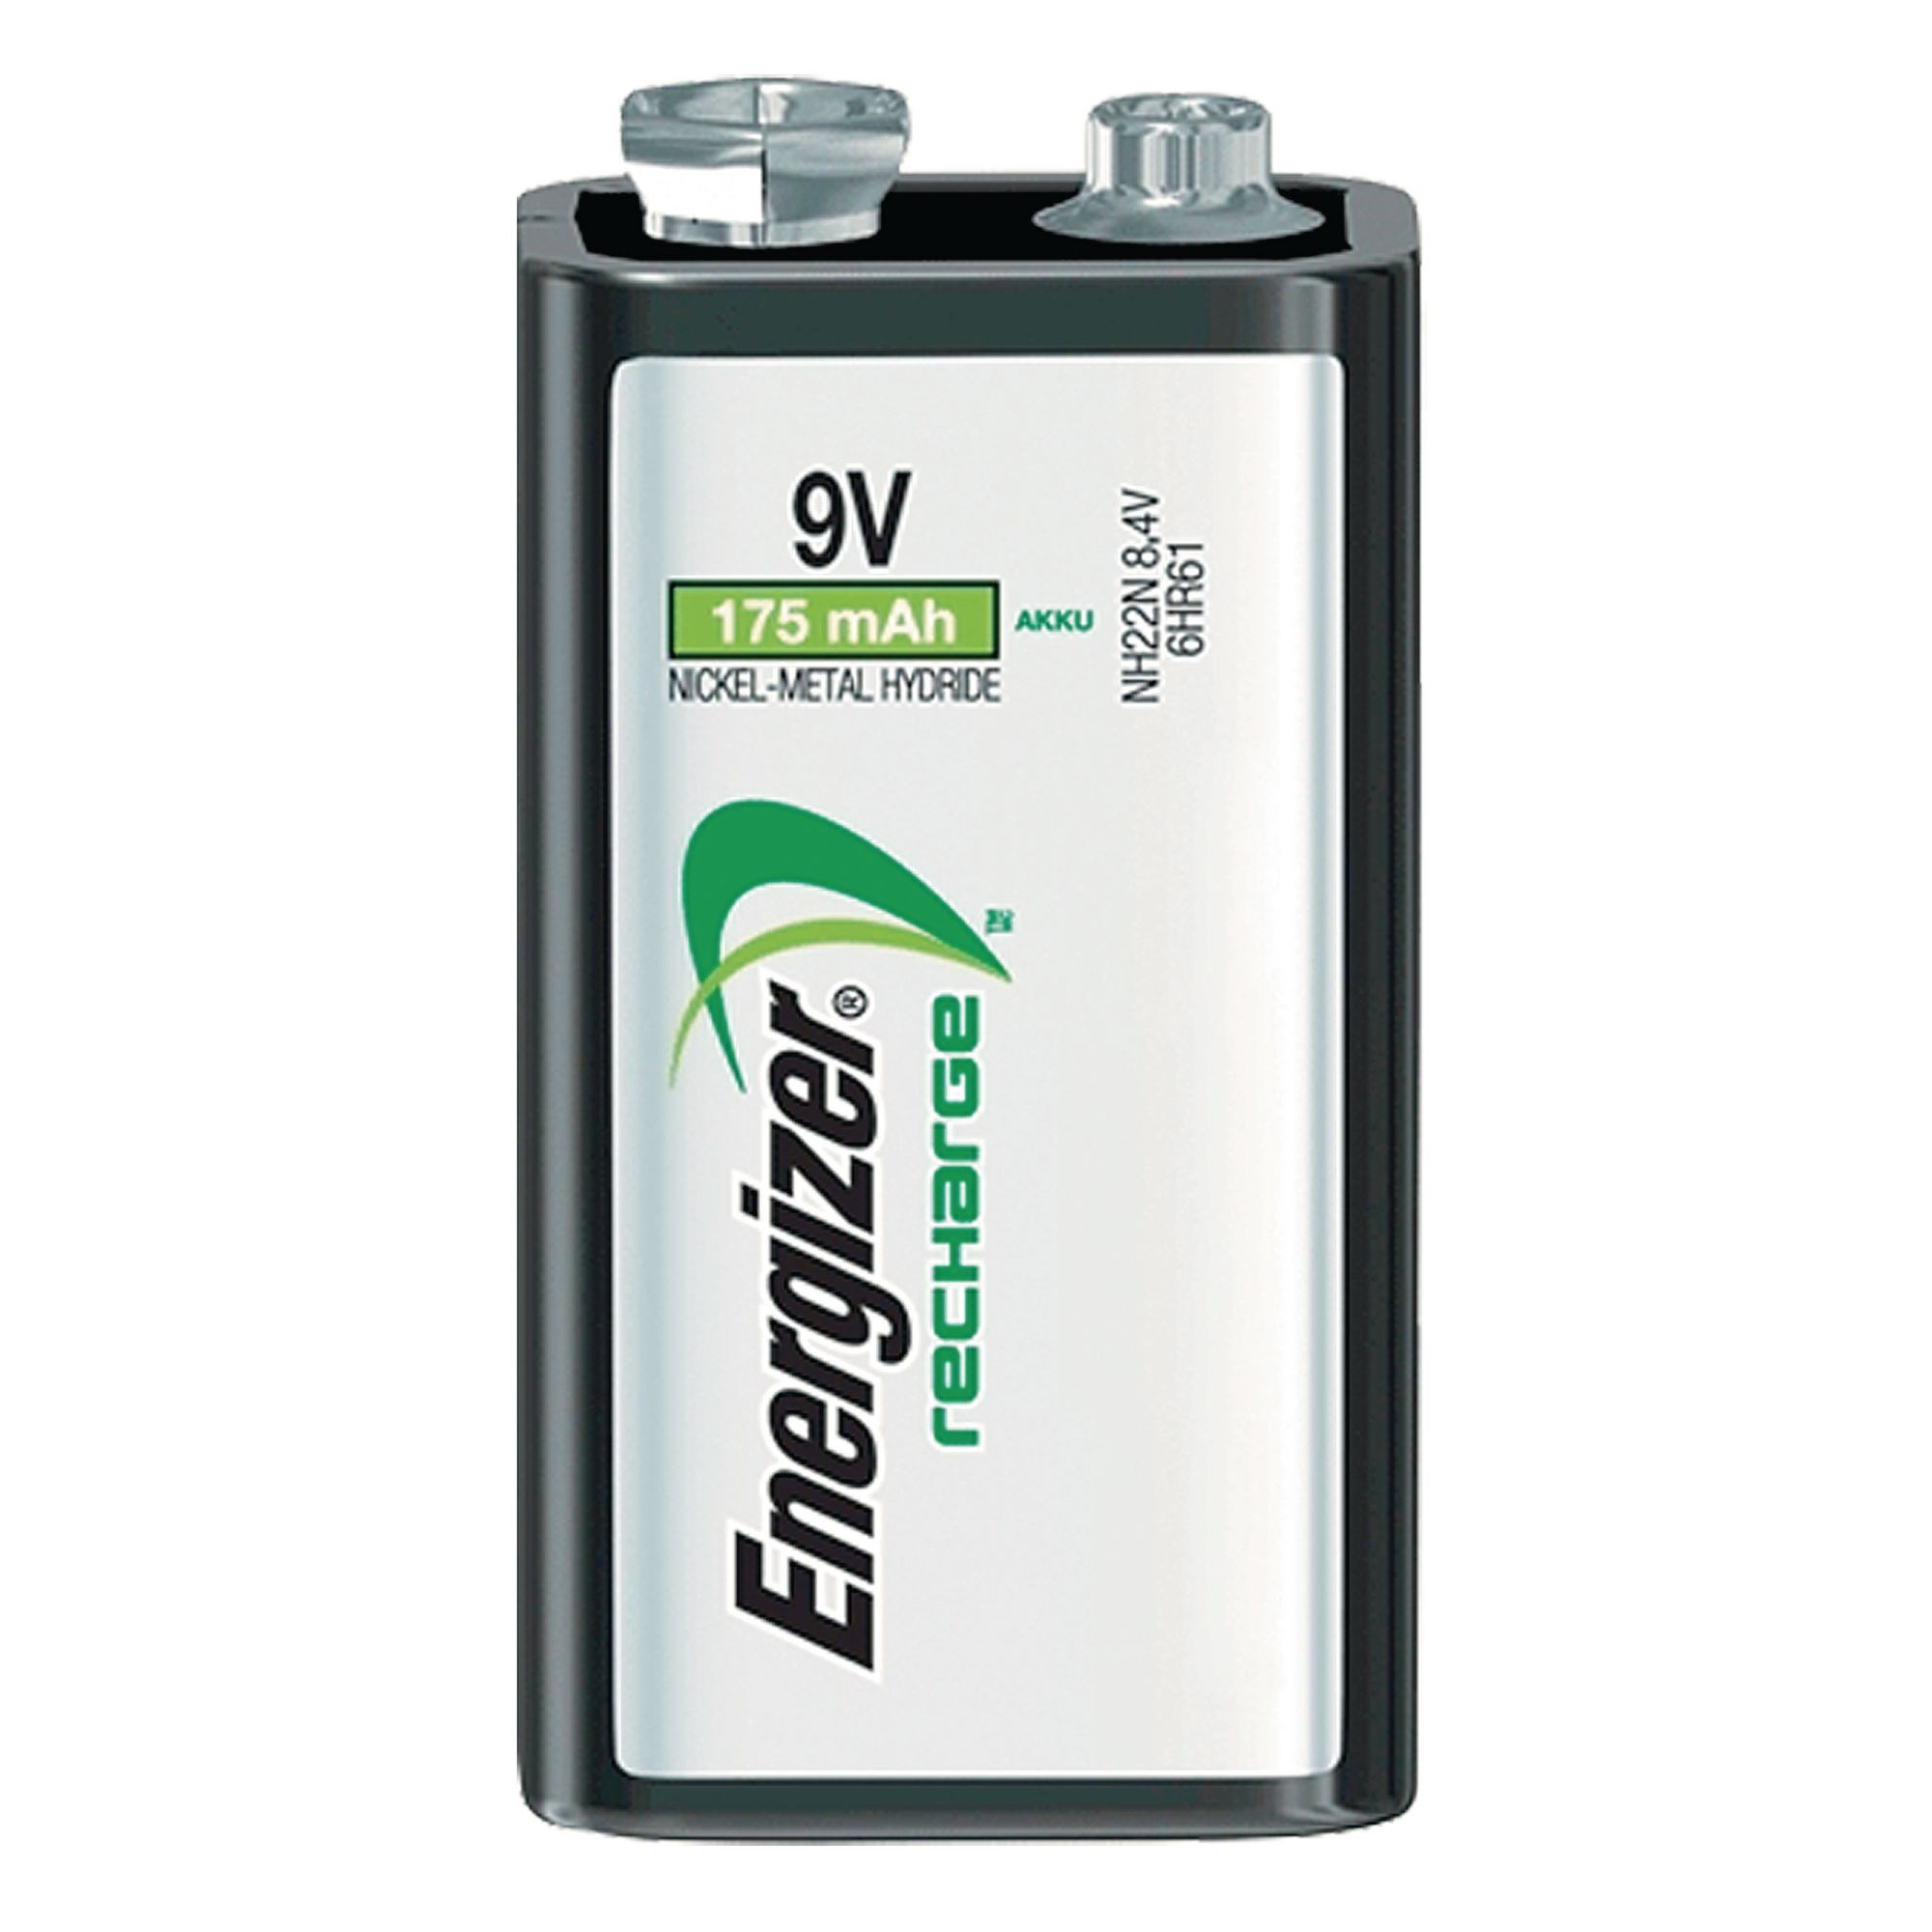 Rechargeable Battery 9V HR22